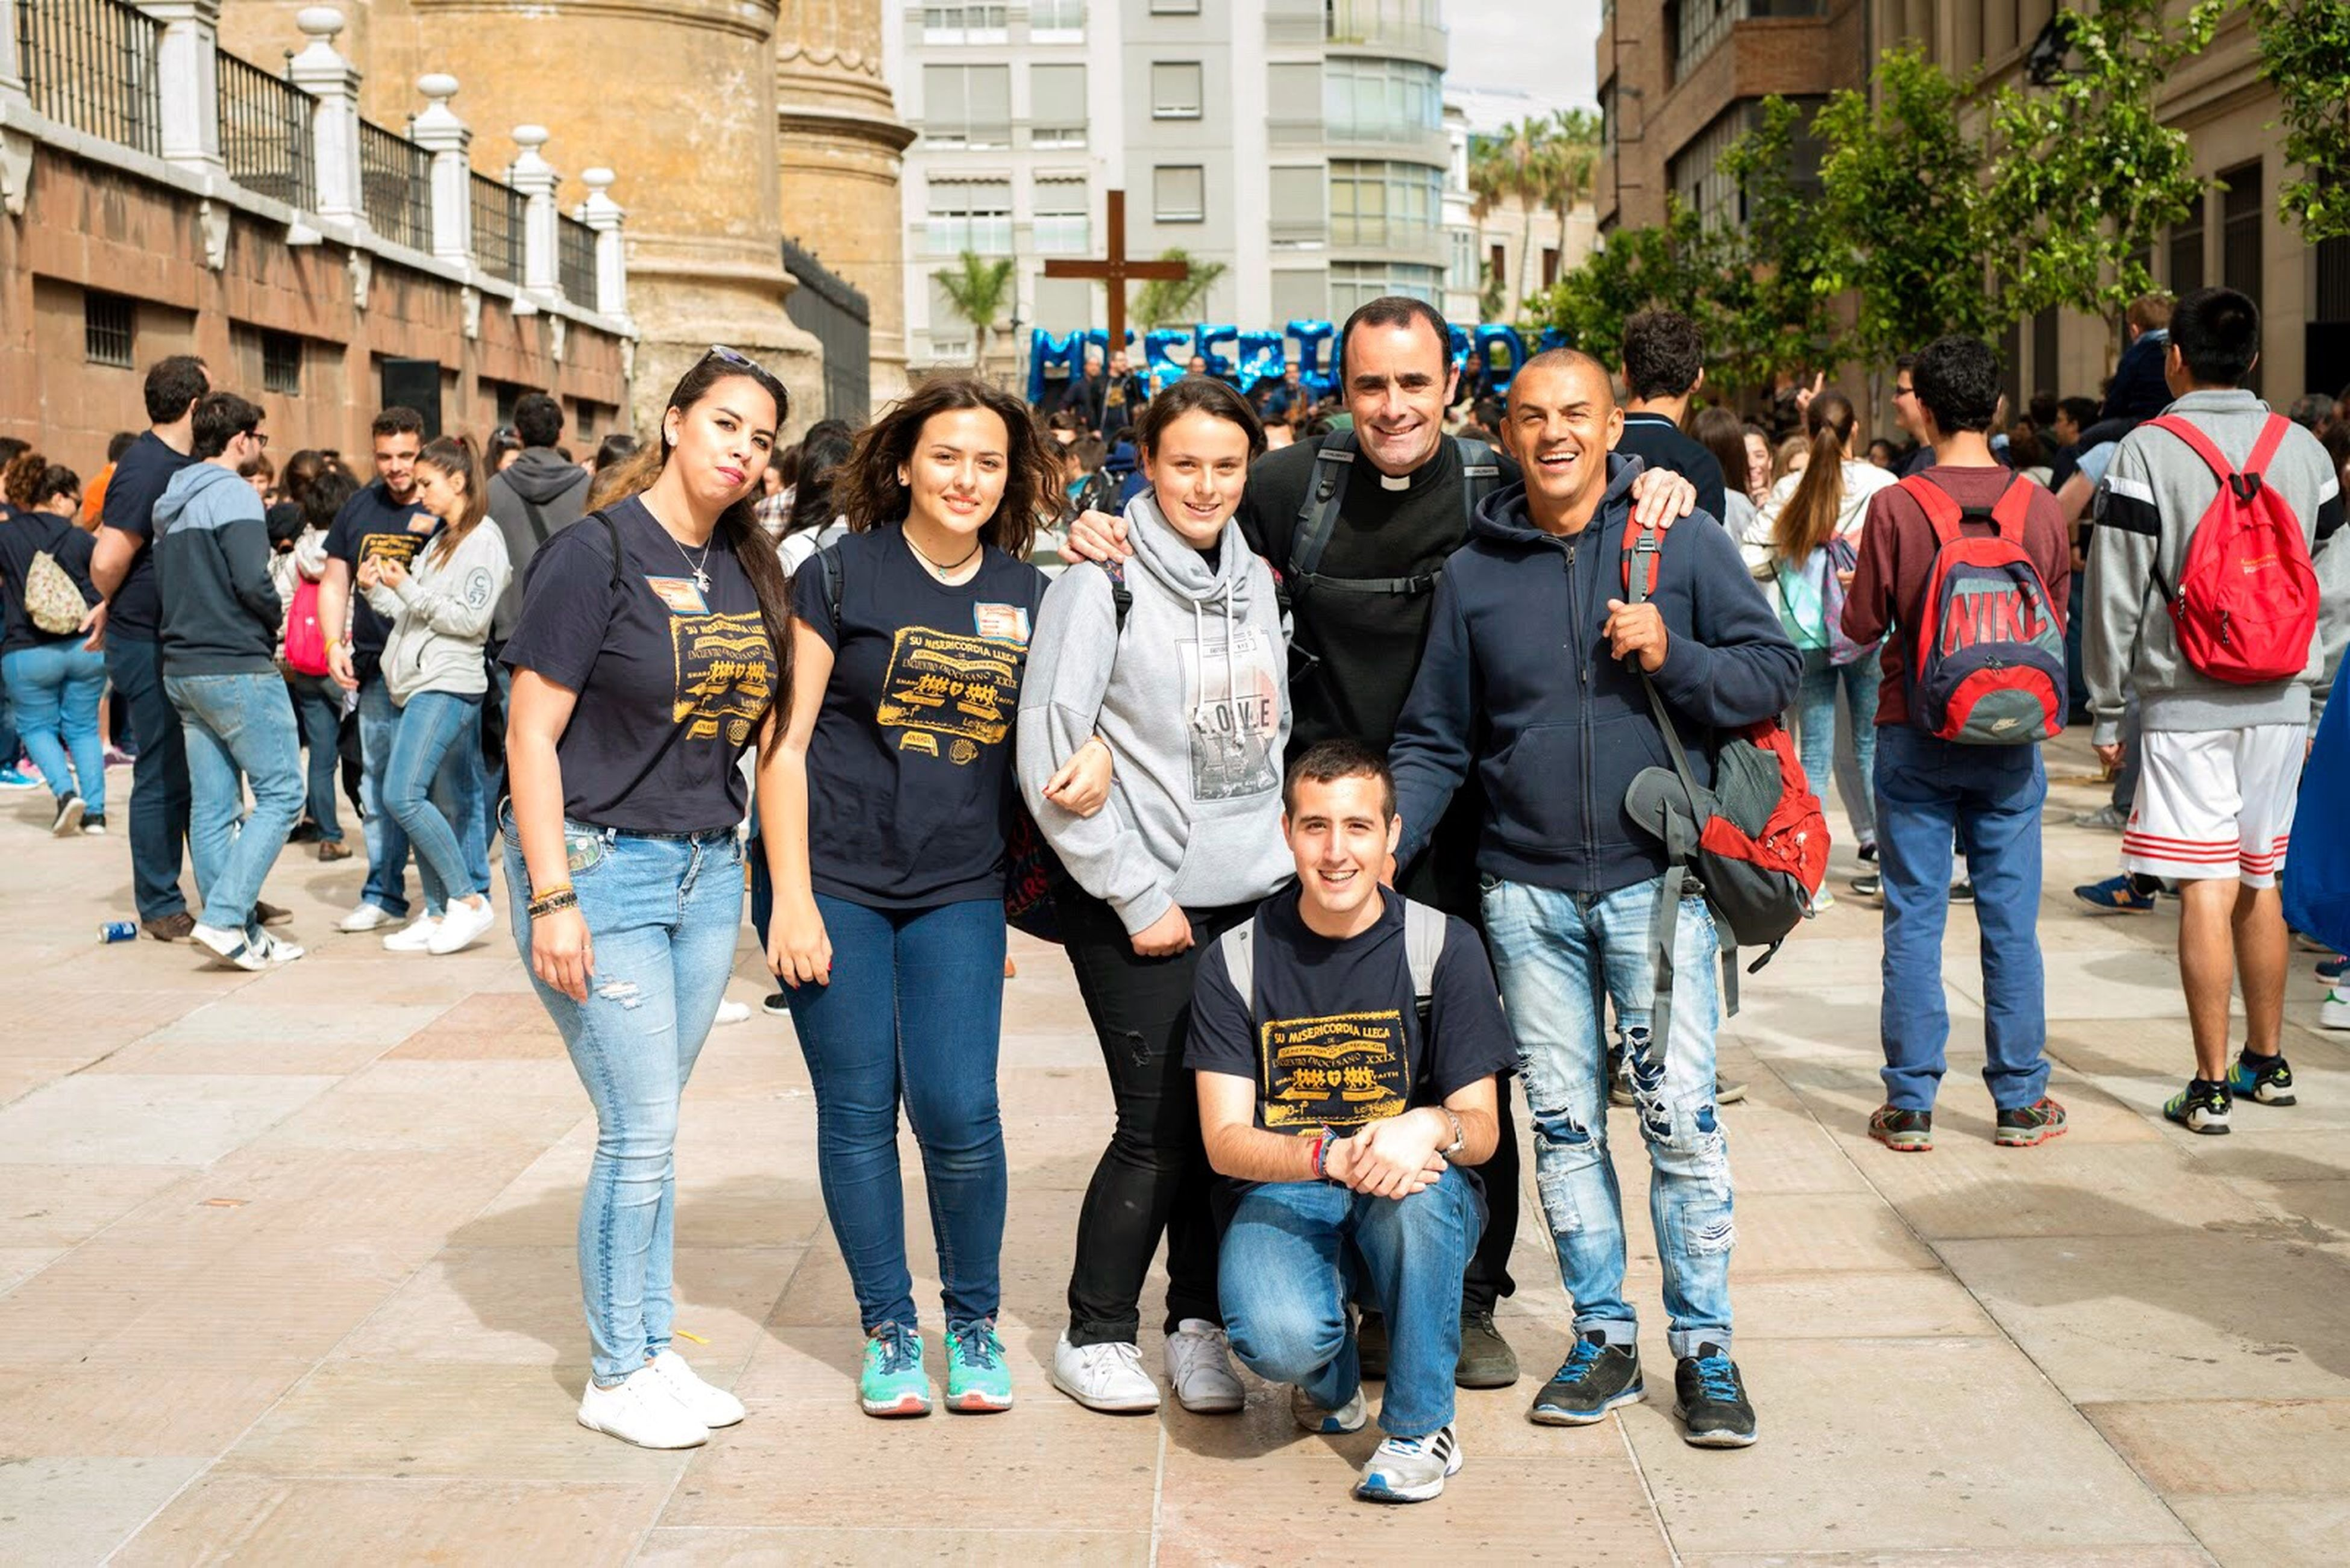 lifestyles, casual clothing, leisure activity, togetherness, person, large group of people, building exterior, standing, full length, architecture, men, built structure, friendship, young women, street, young adult, front view, city life, city